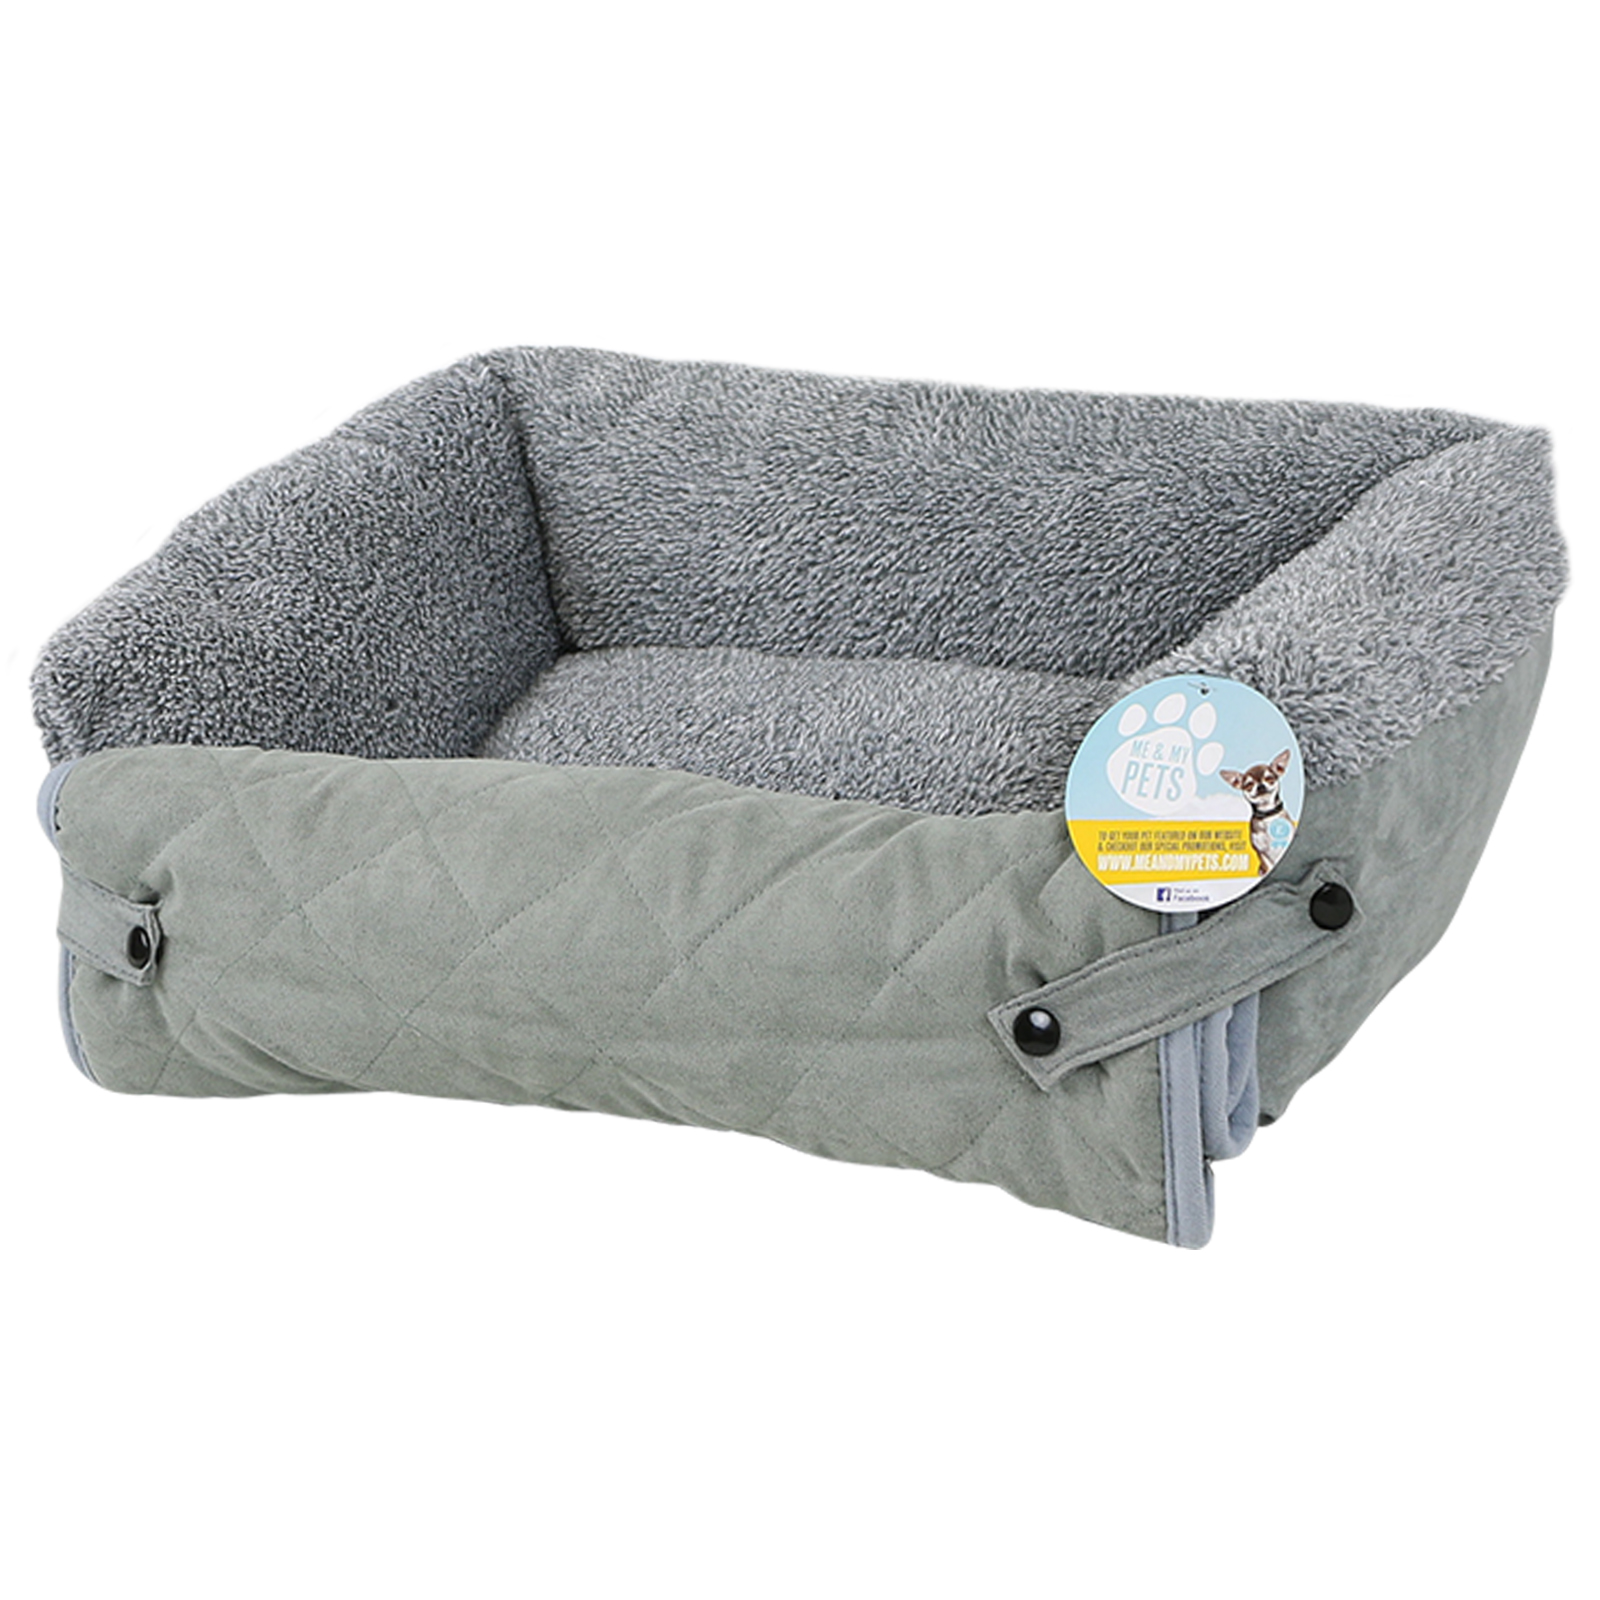 ME & MY PET QUILTED GREY FLEECE FOLD OUT CAT DOG BED SOFA COUCH